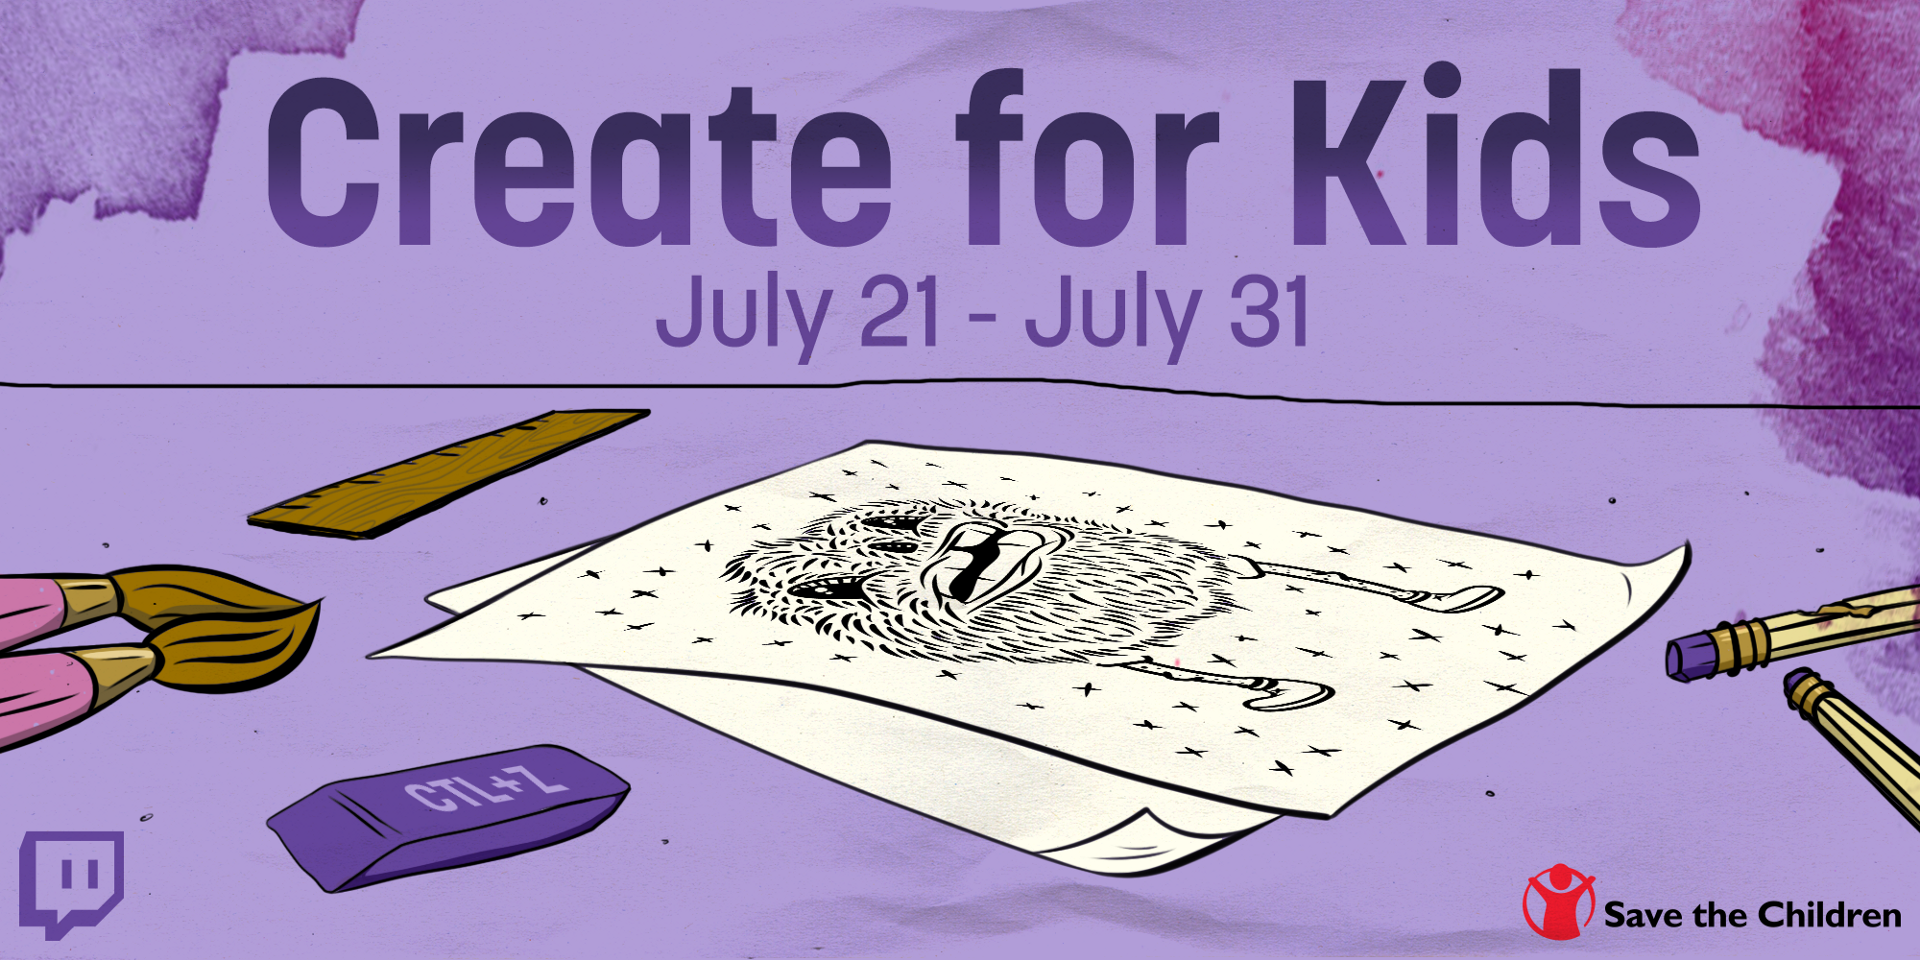 help kids and get cool stuff with the create for kids charity event